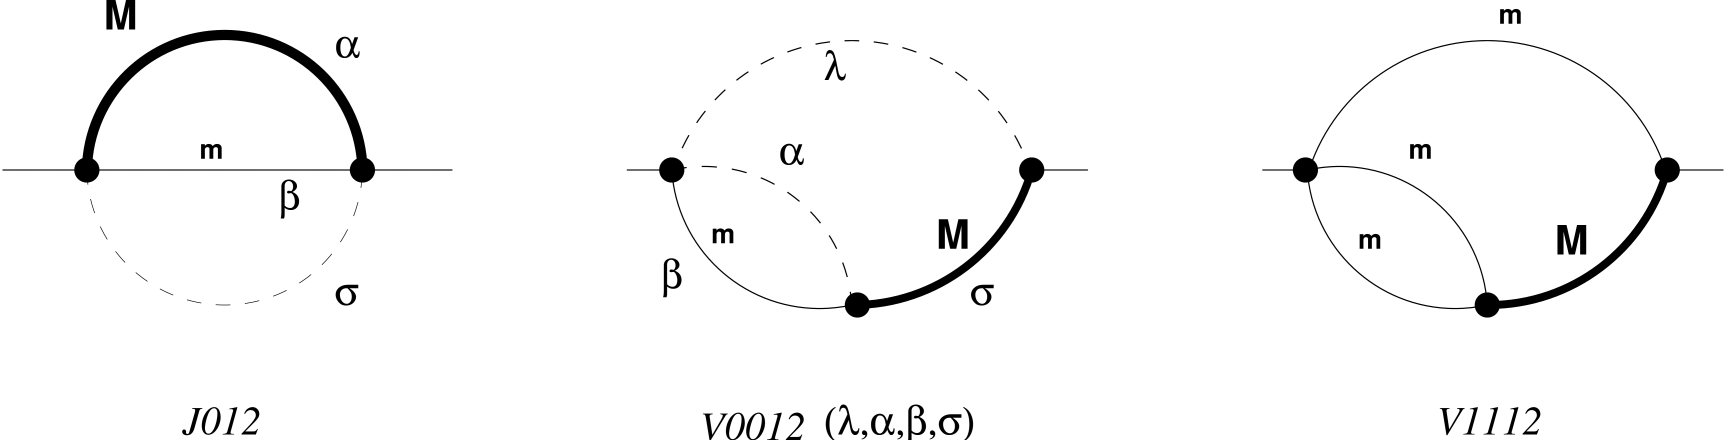 The master diagrams arising in this two–loop calculation. Bold, thin and dashed lines correspond to off–shell massive, on–shell massive and to massless propagators, respectively.